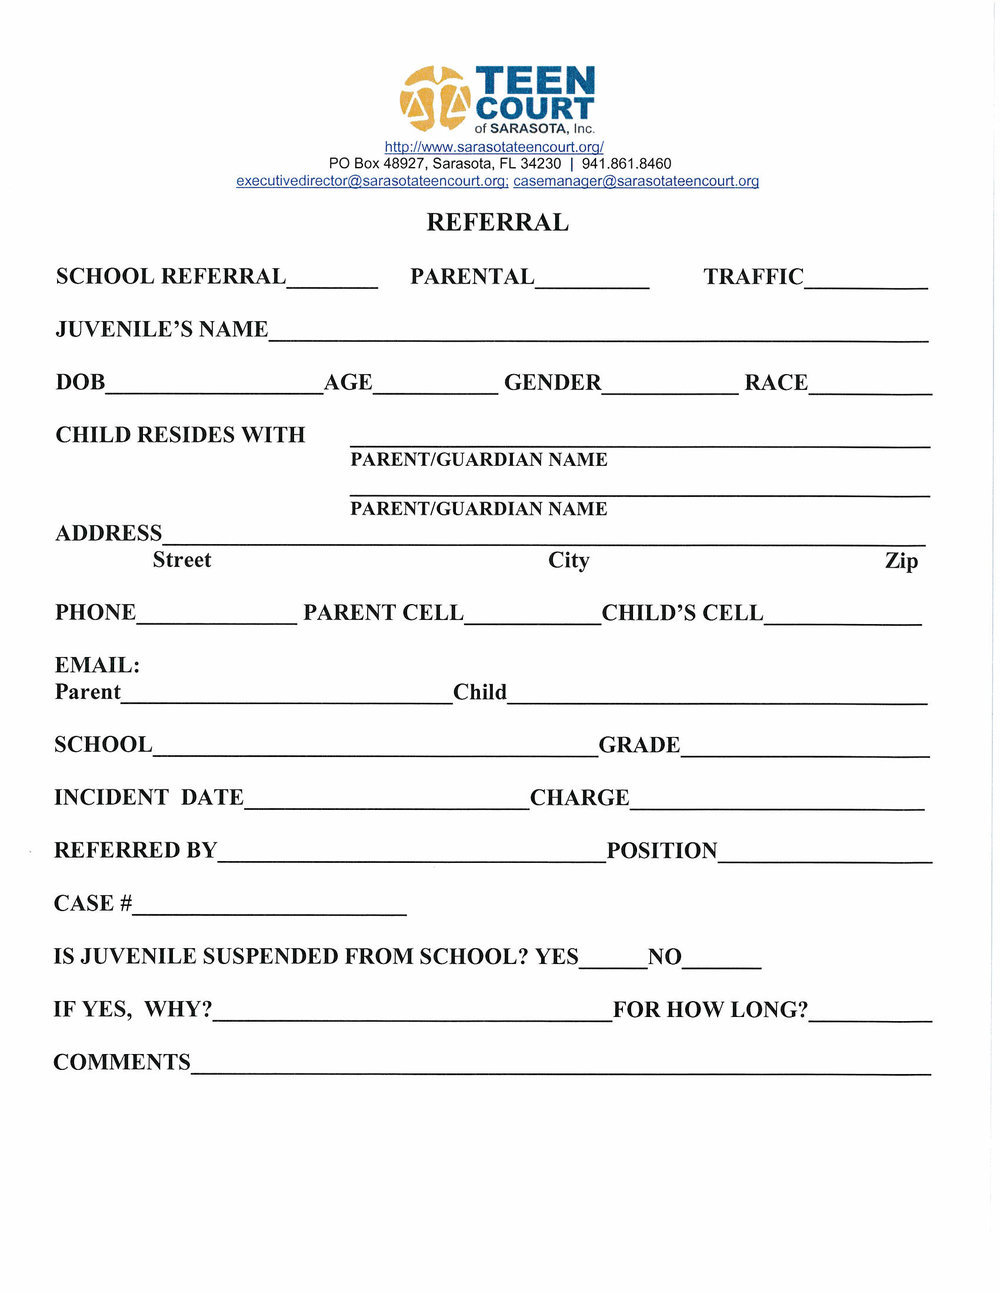 Parent Referral Form Website_001.jpg